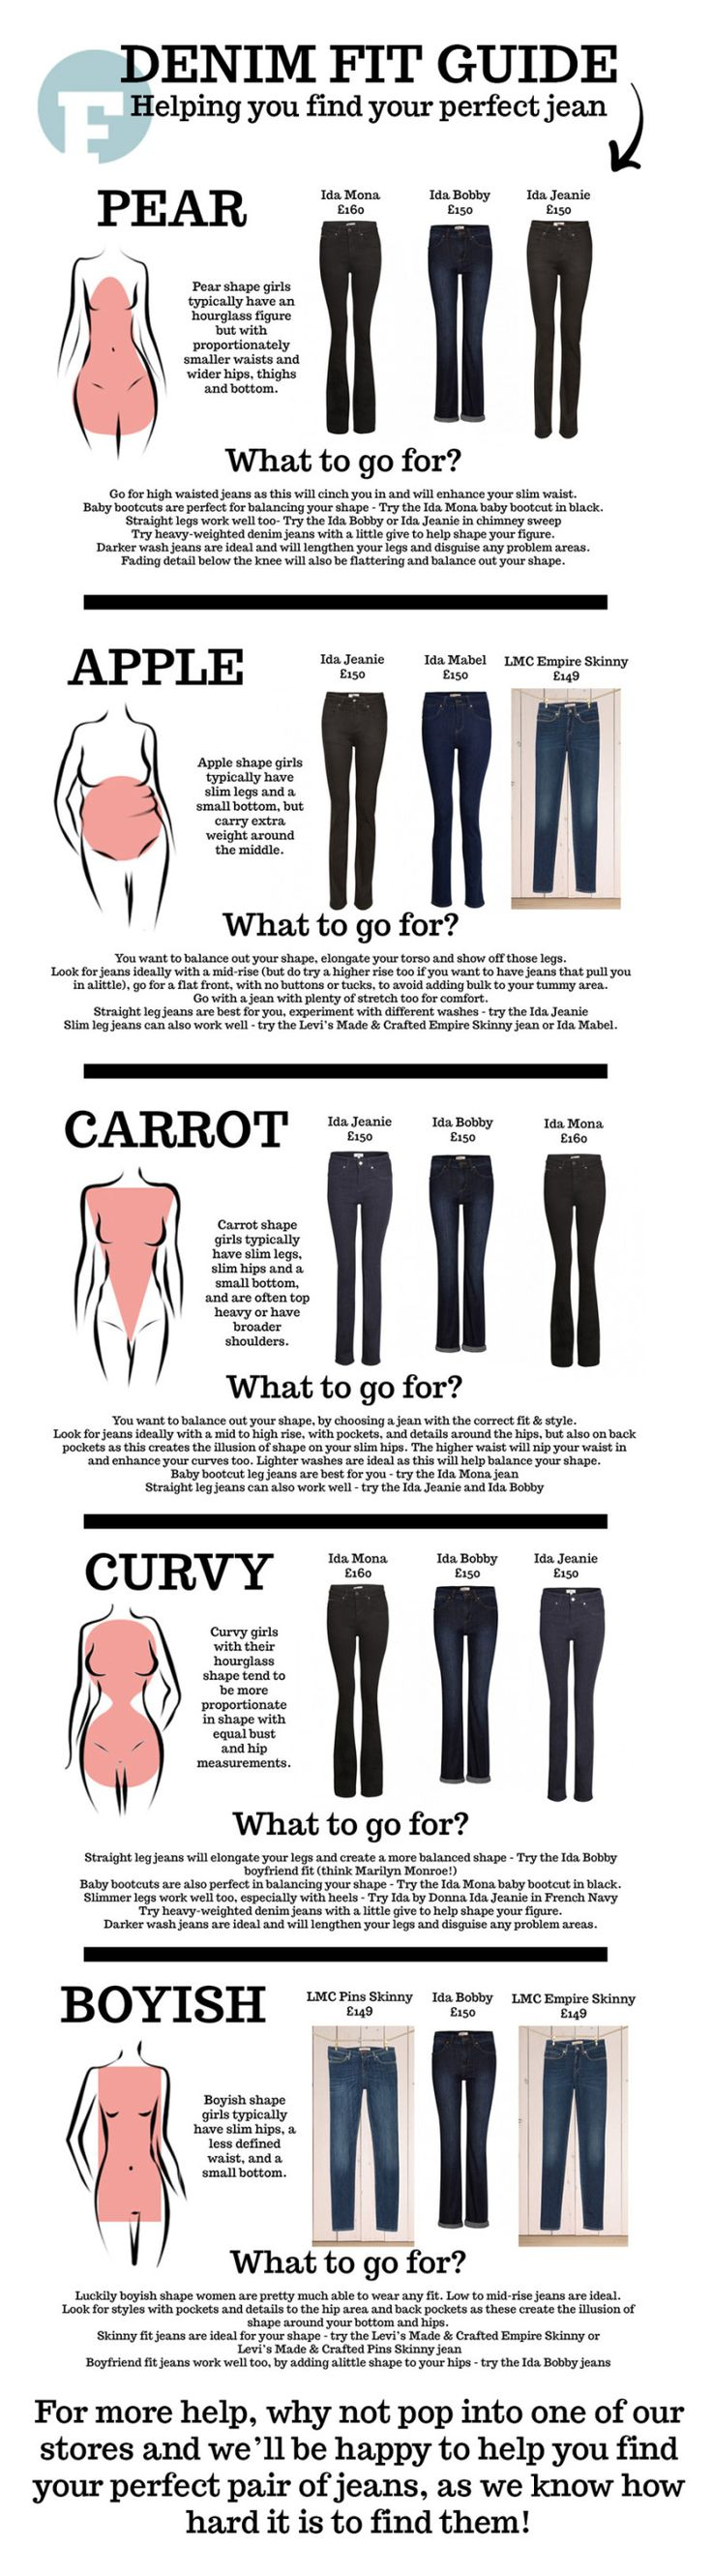 Denim Fit Guide - Helping You Find Perfect Jeans Based On Your Body Shape.